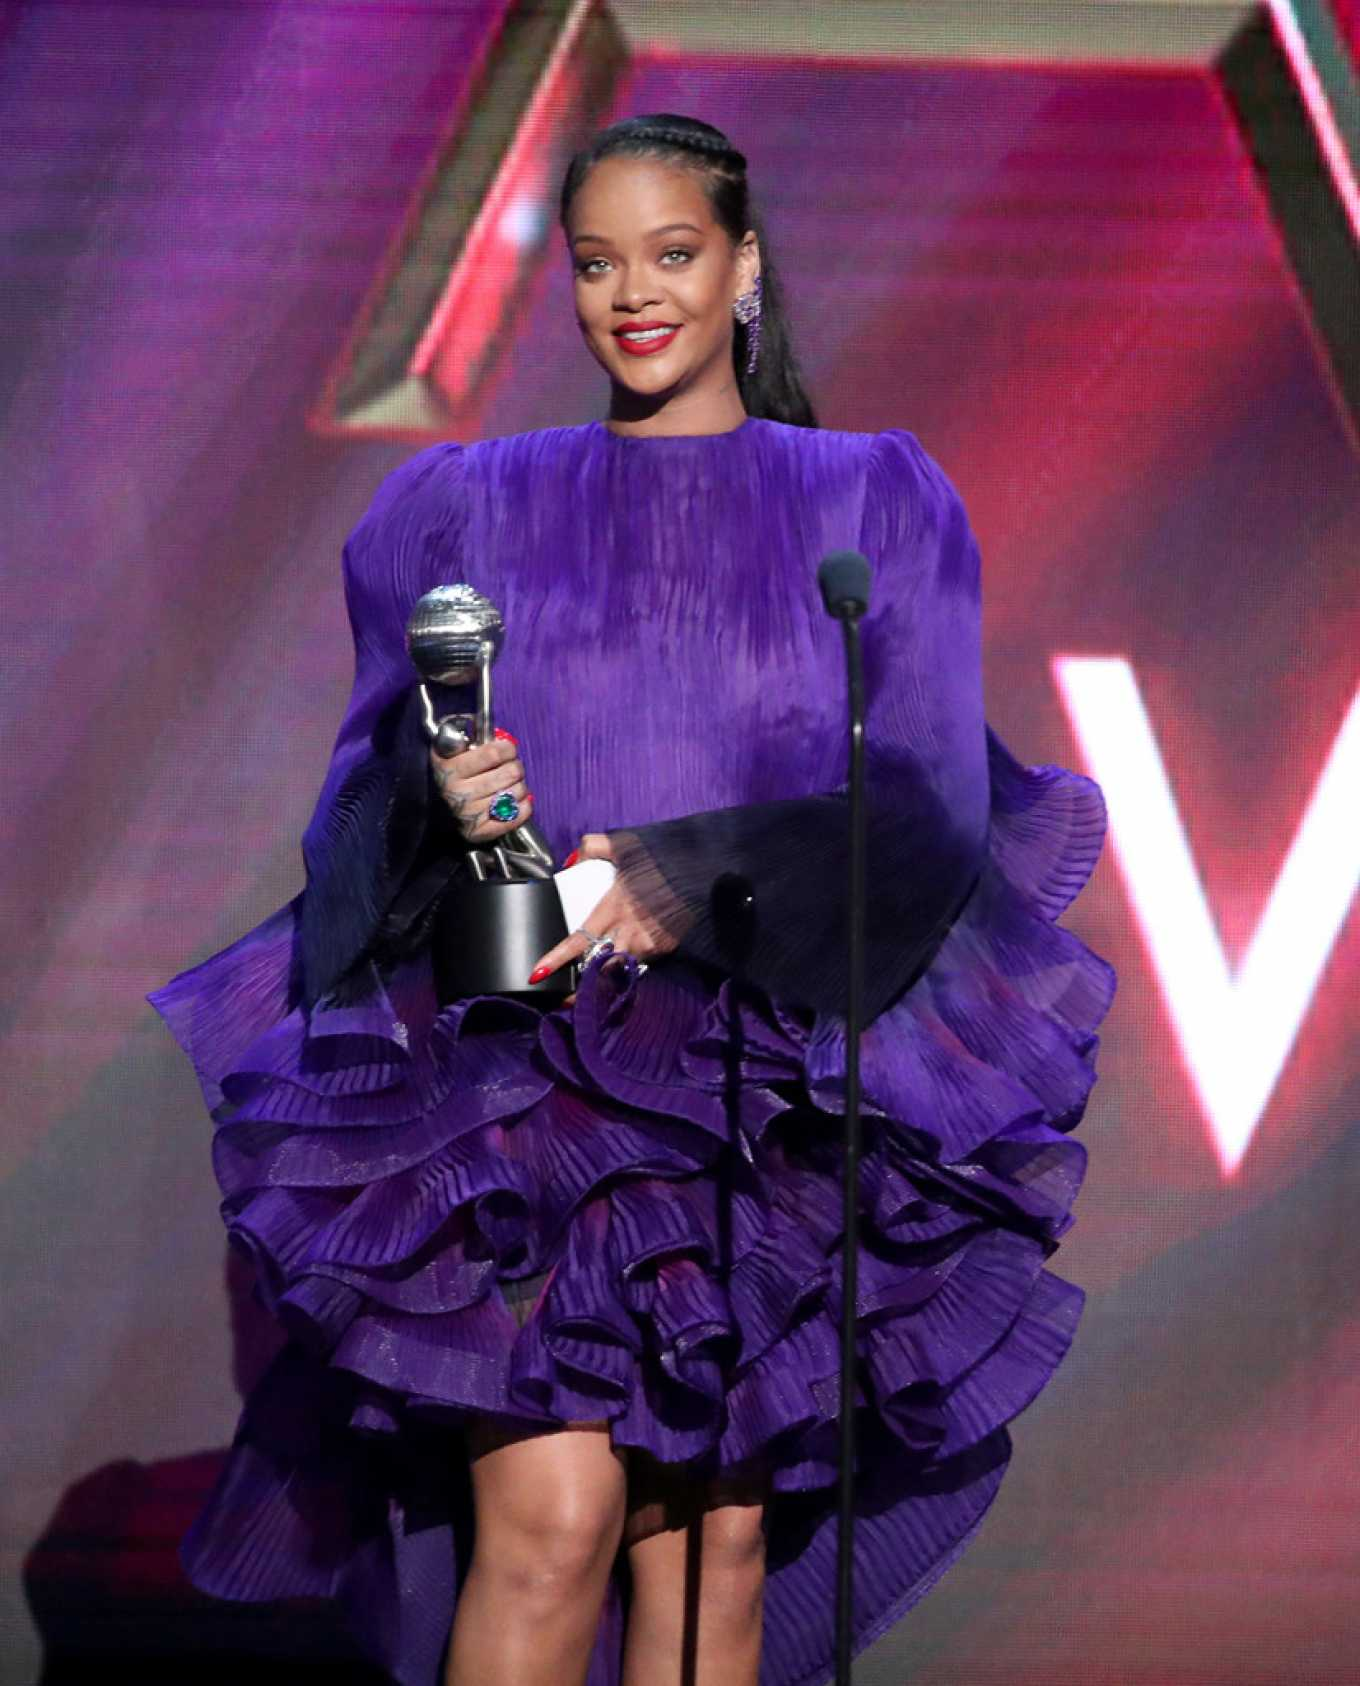 Rihanna donning strappy purple ankle sandals with high heel and thin straps